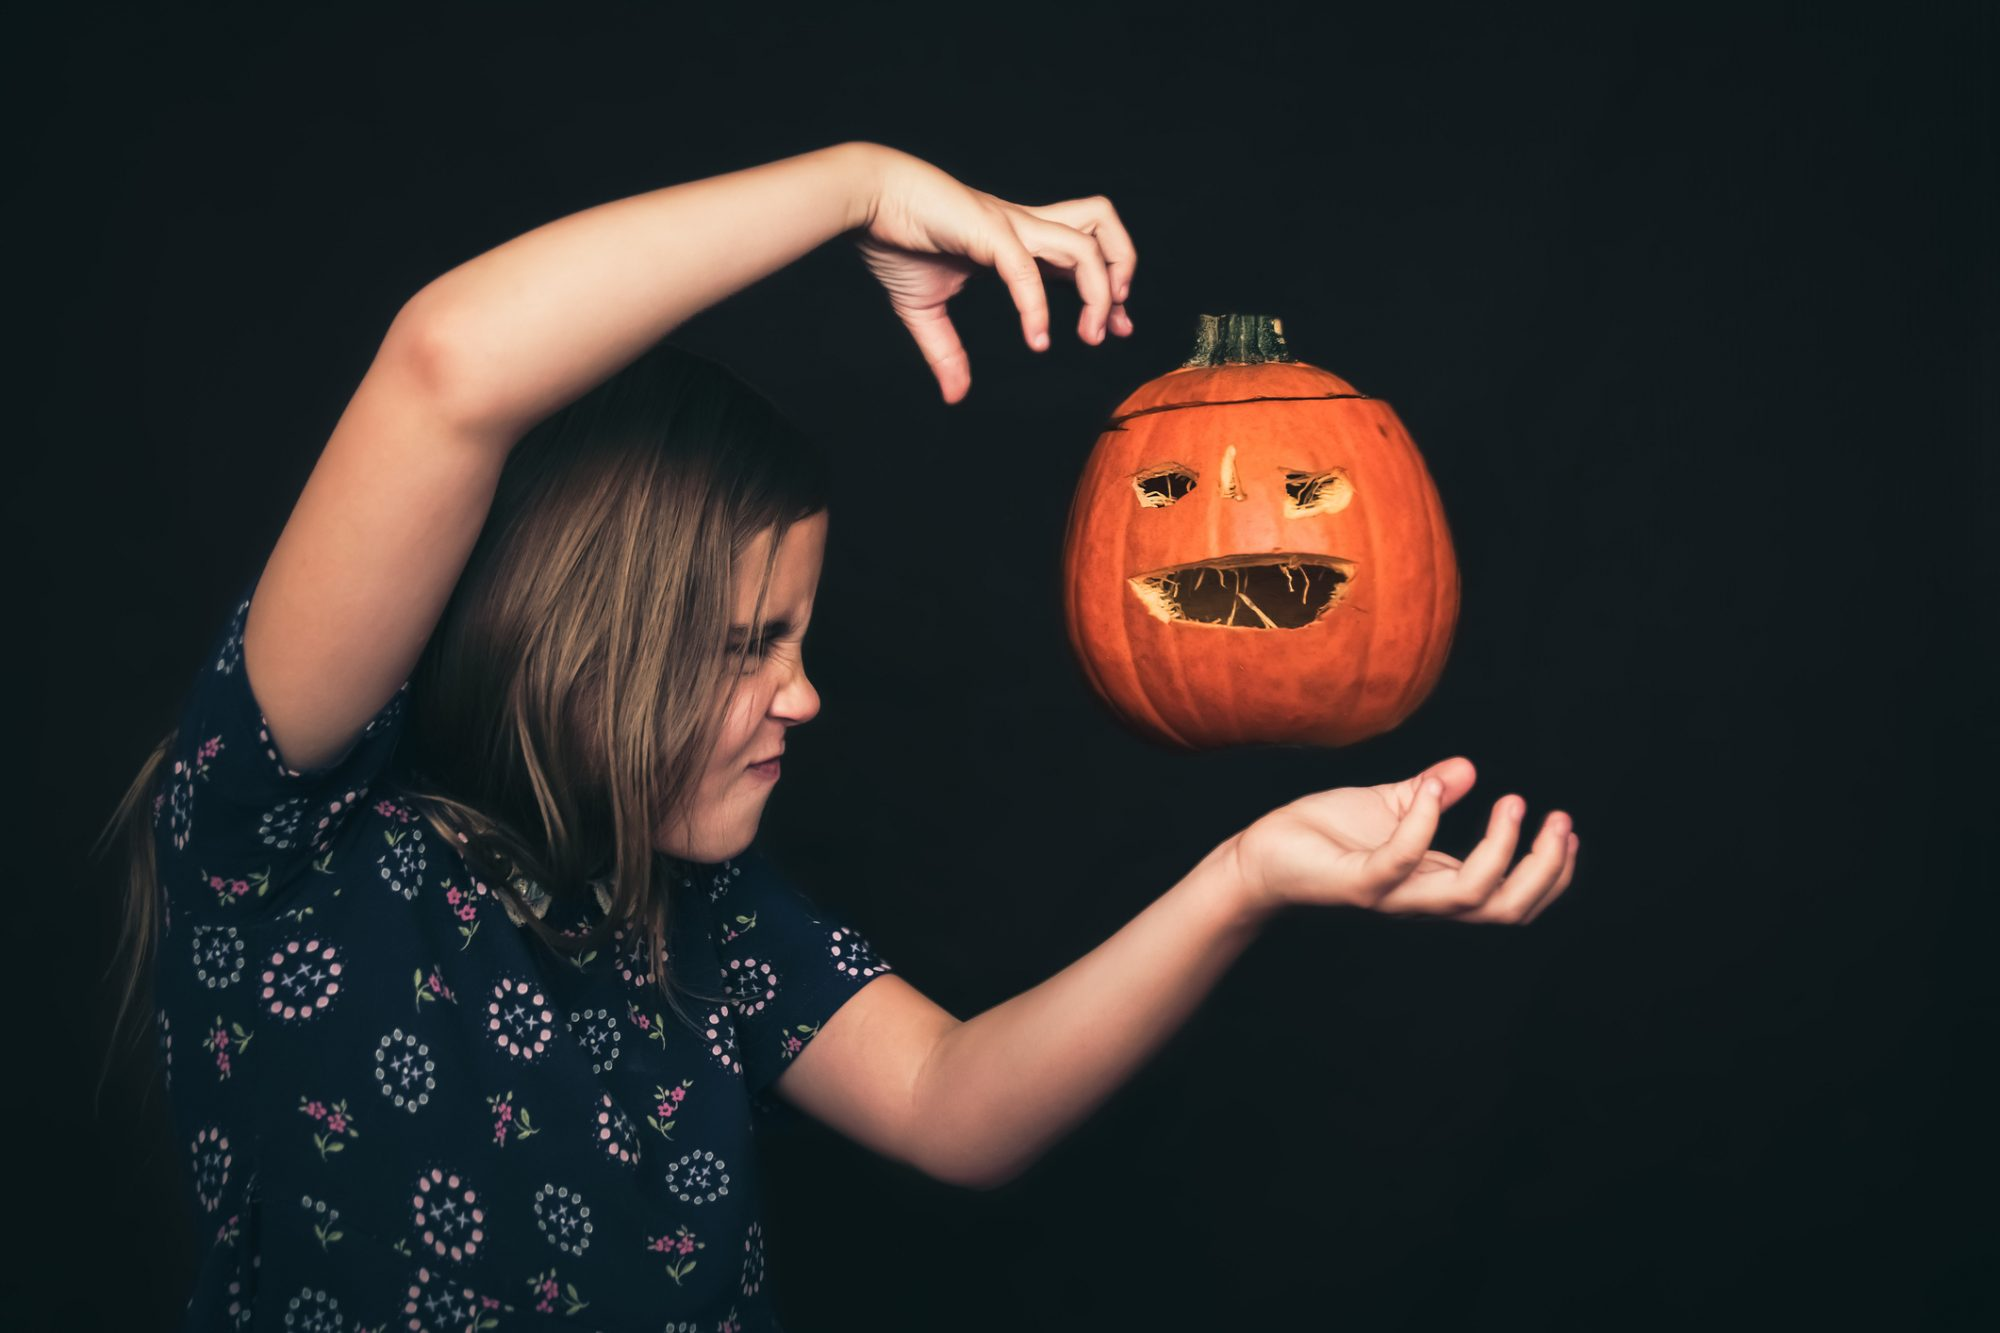 A girl concentrates with all her strength as she levitates a jack-o'-lantern.